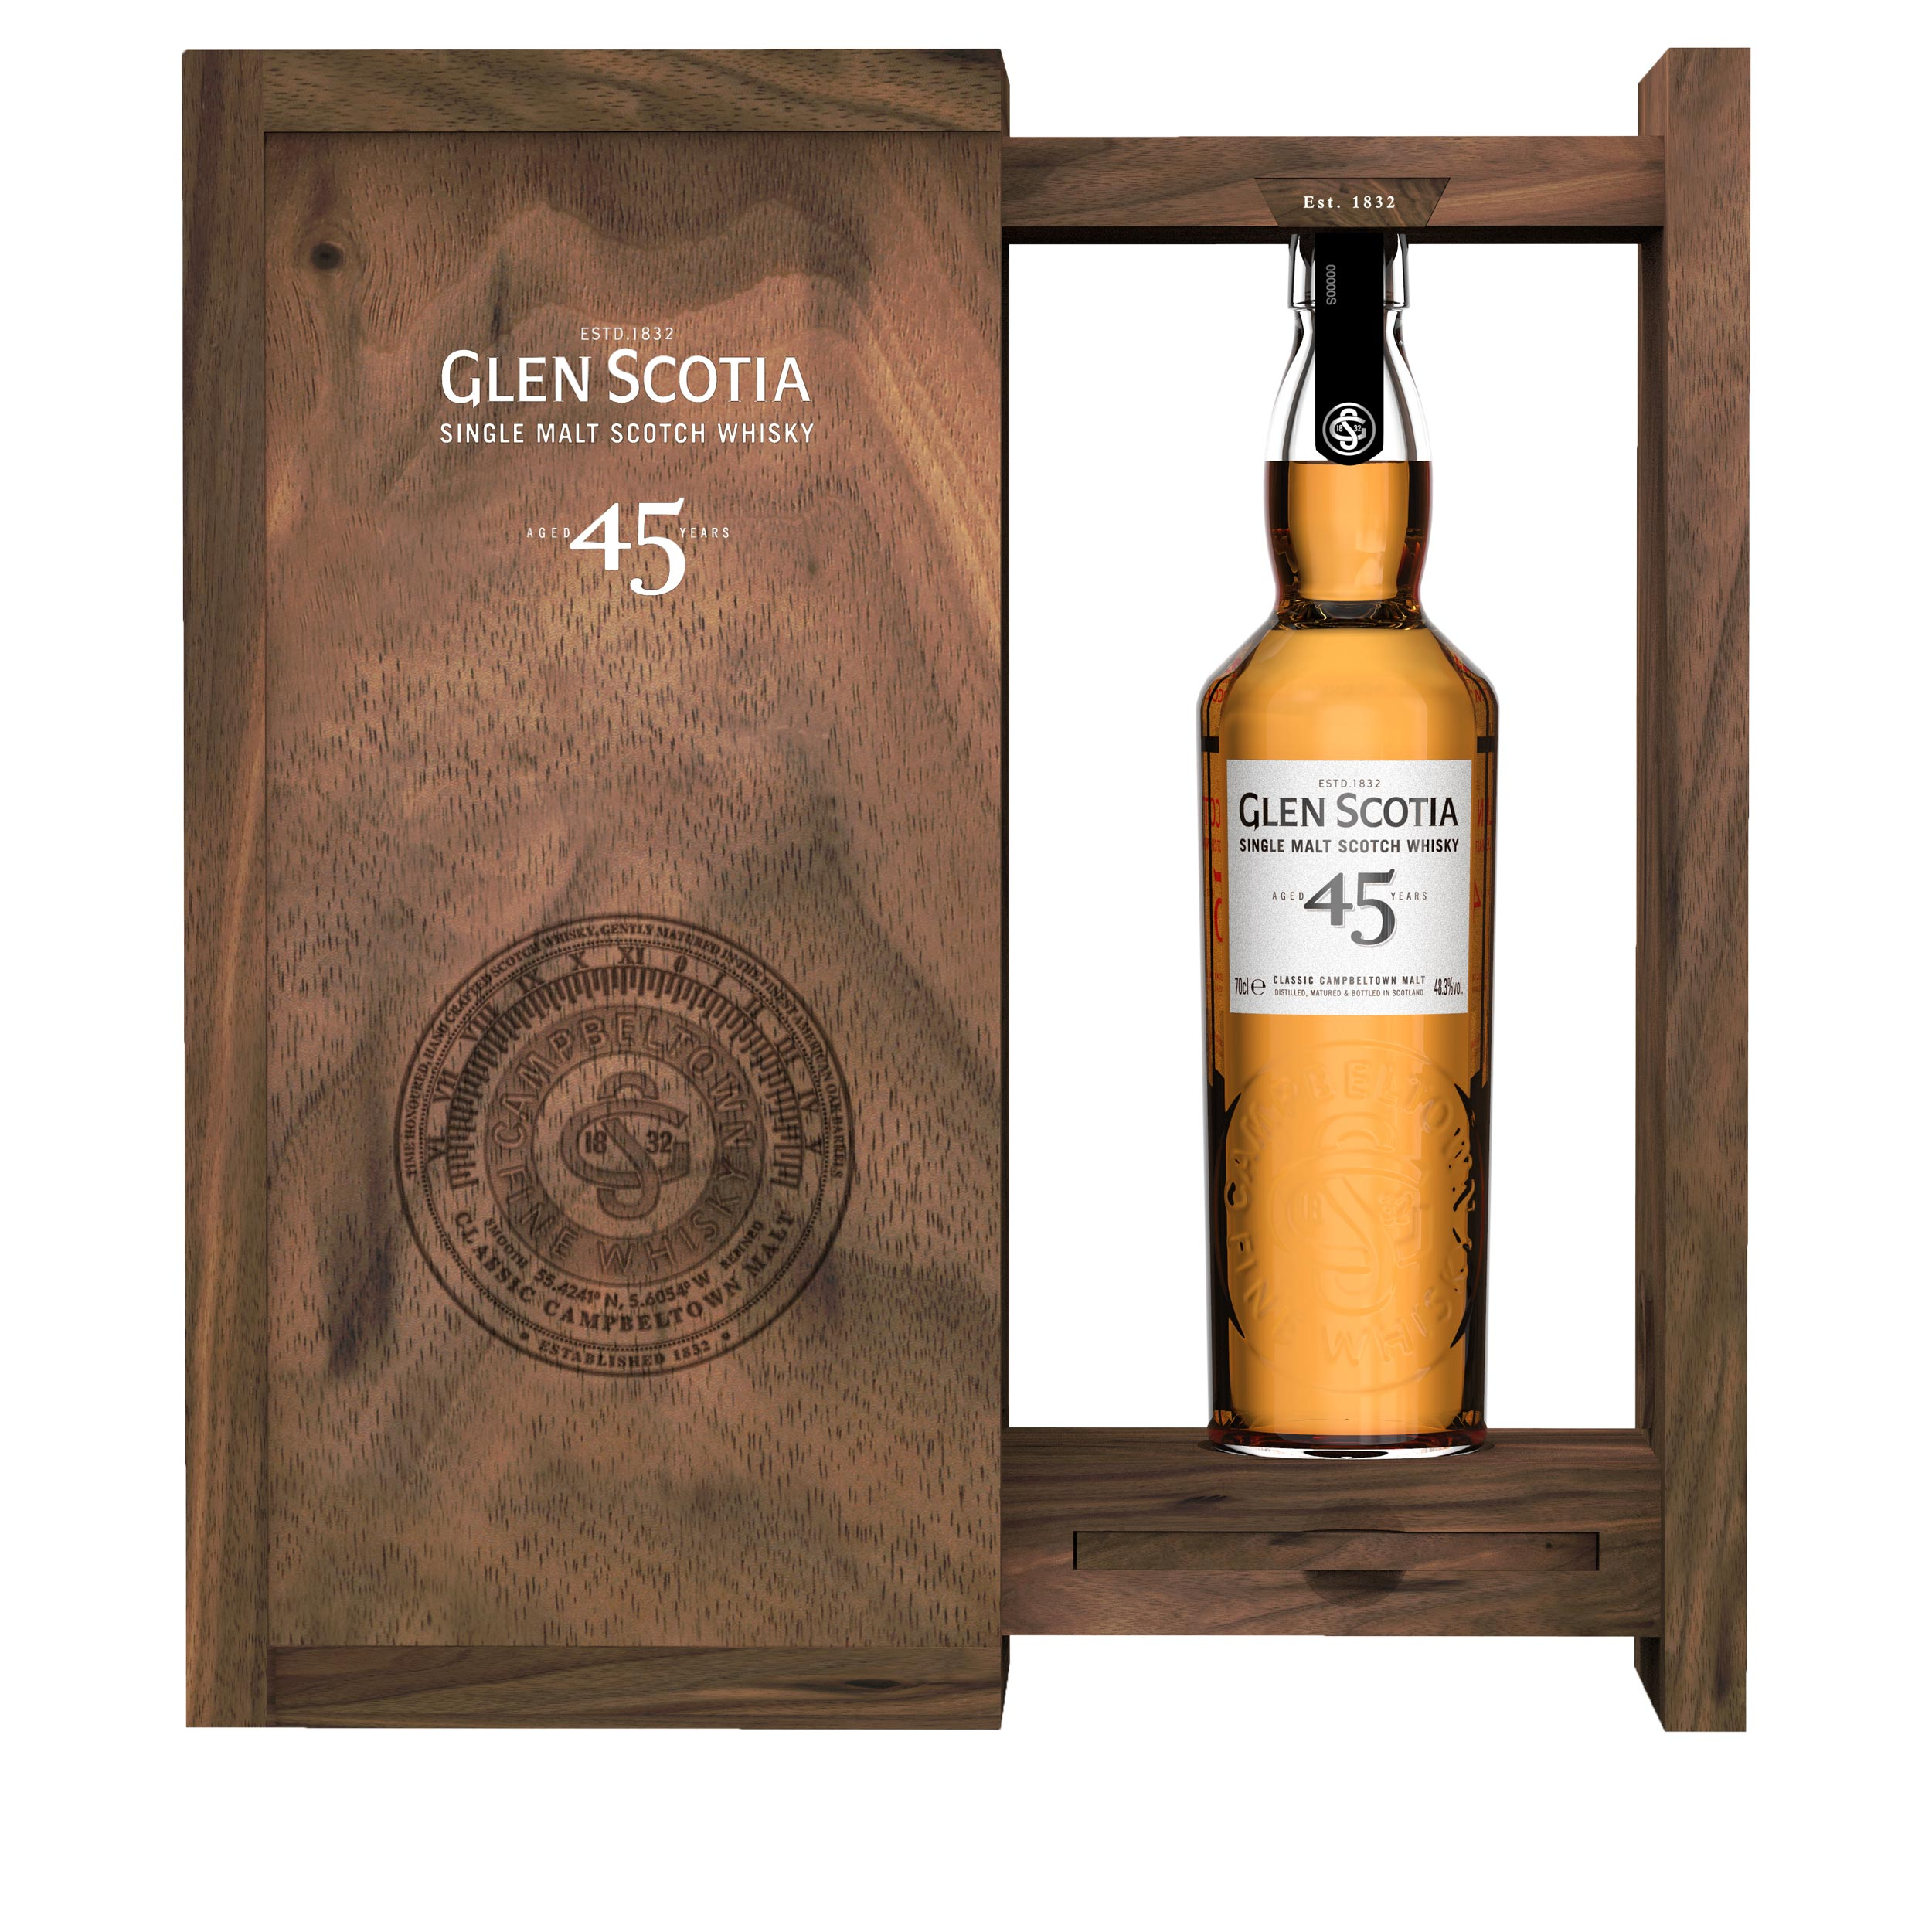 Glen Scotia 45 Year Old Limited Edition Campbeltown Single Malt Scotch Whisky 70cl